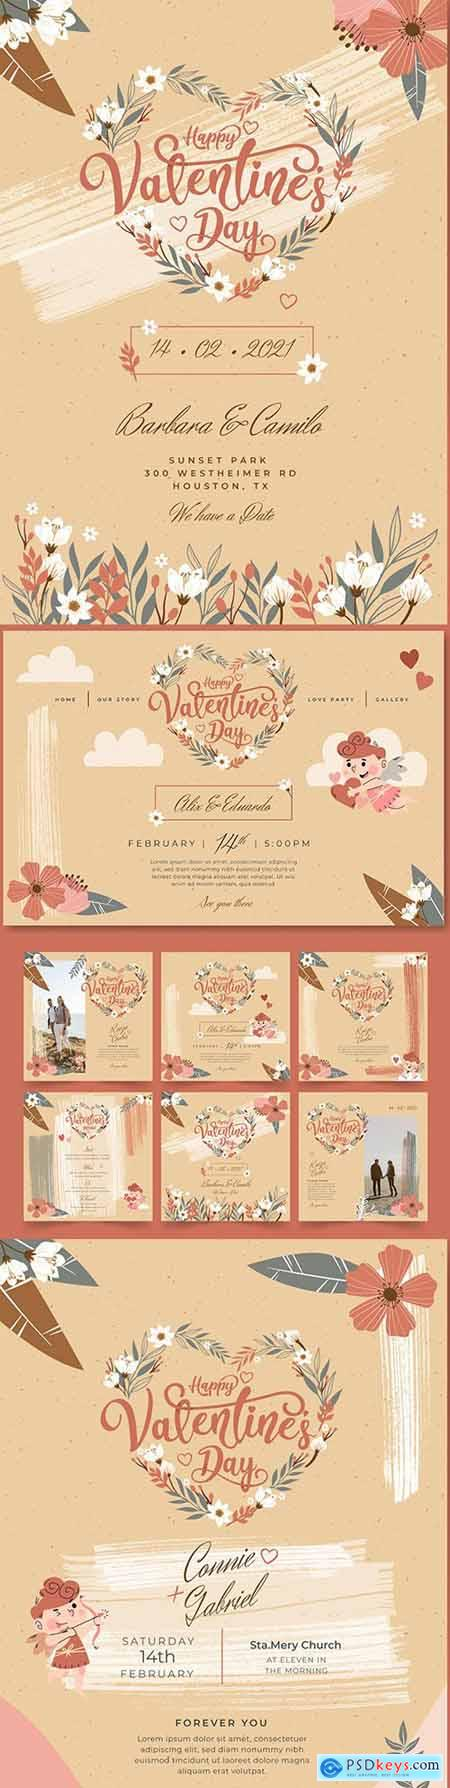 Valentines Day postcard and instagram messages